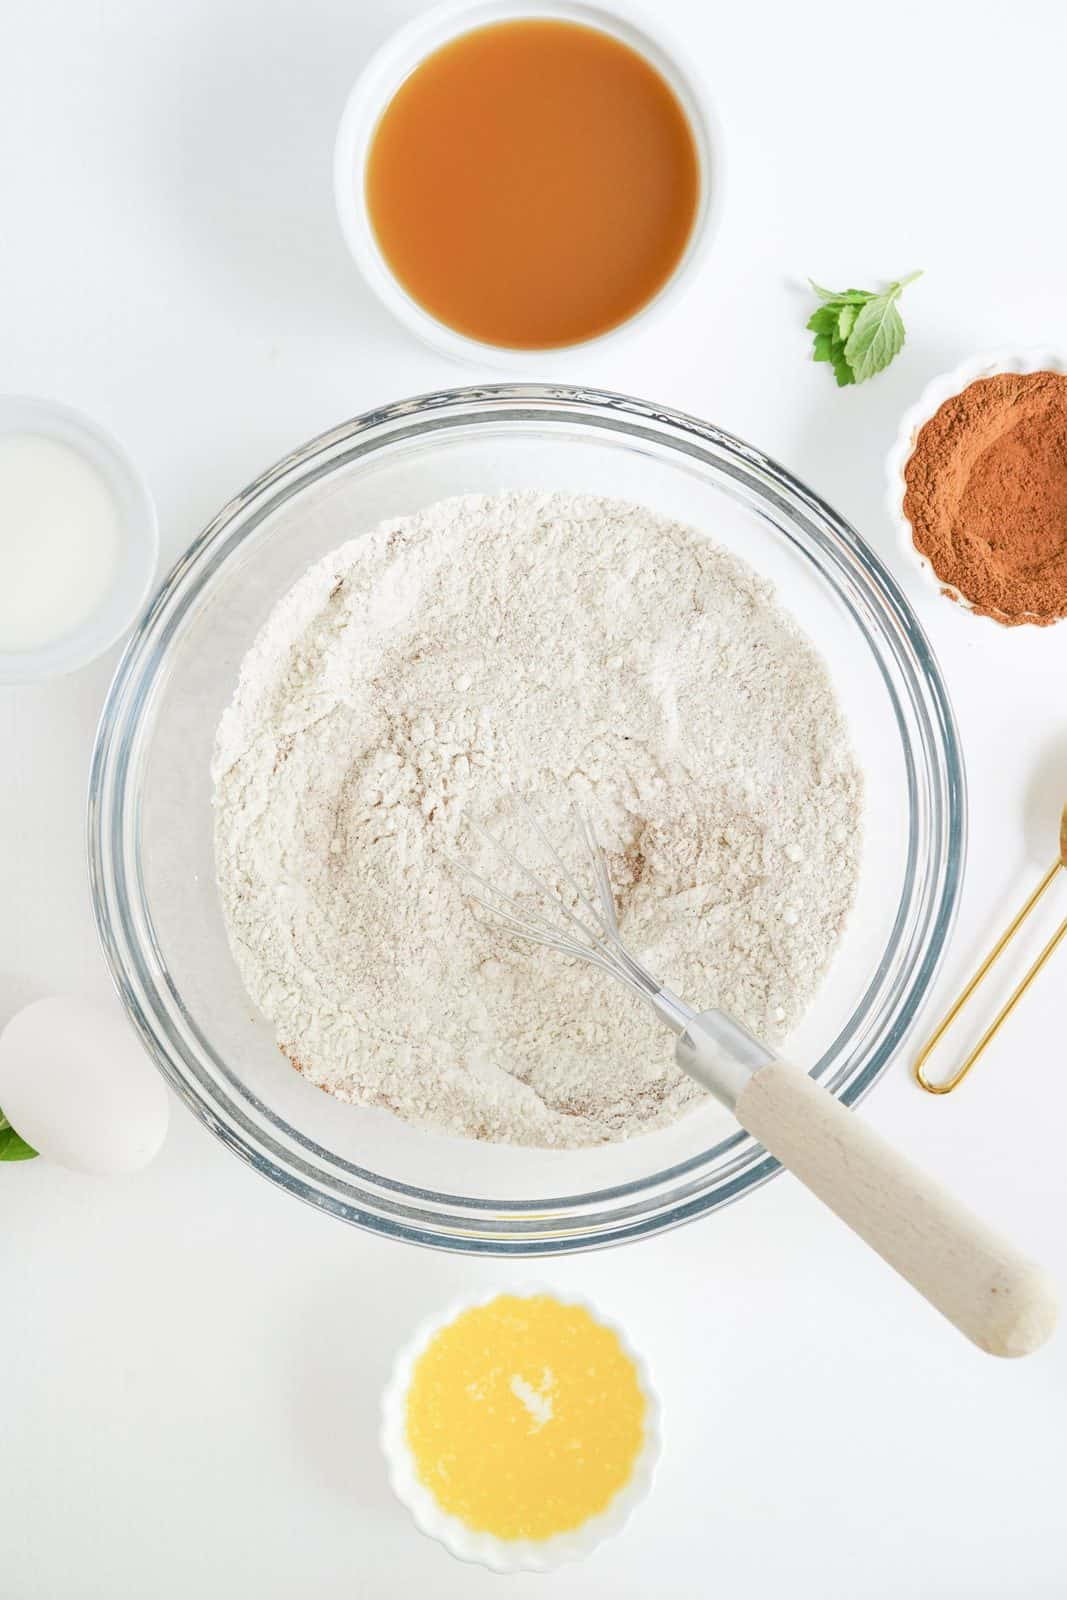 Dry ingredients whisked up in clear bowl.